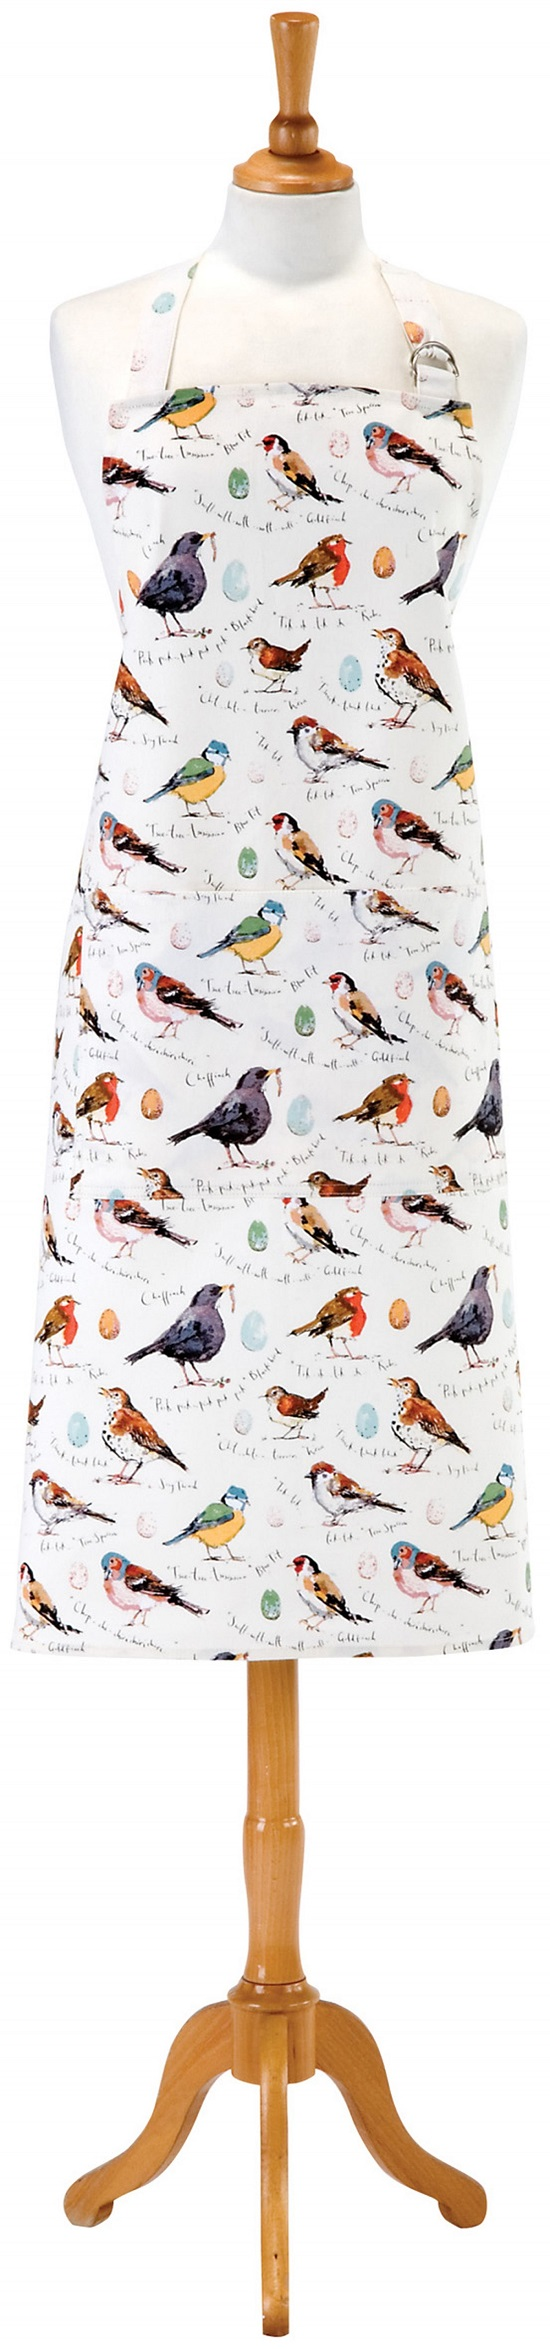 MF Birdsong Cotton Apron